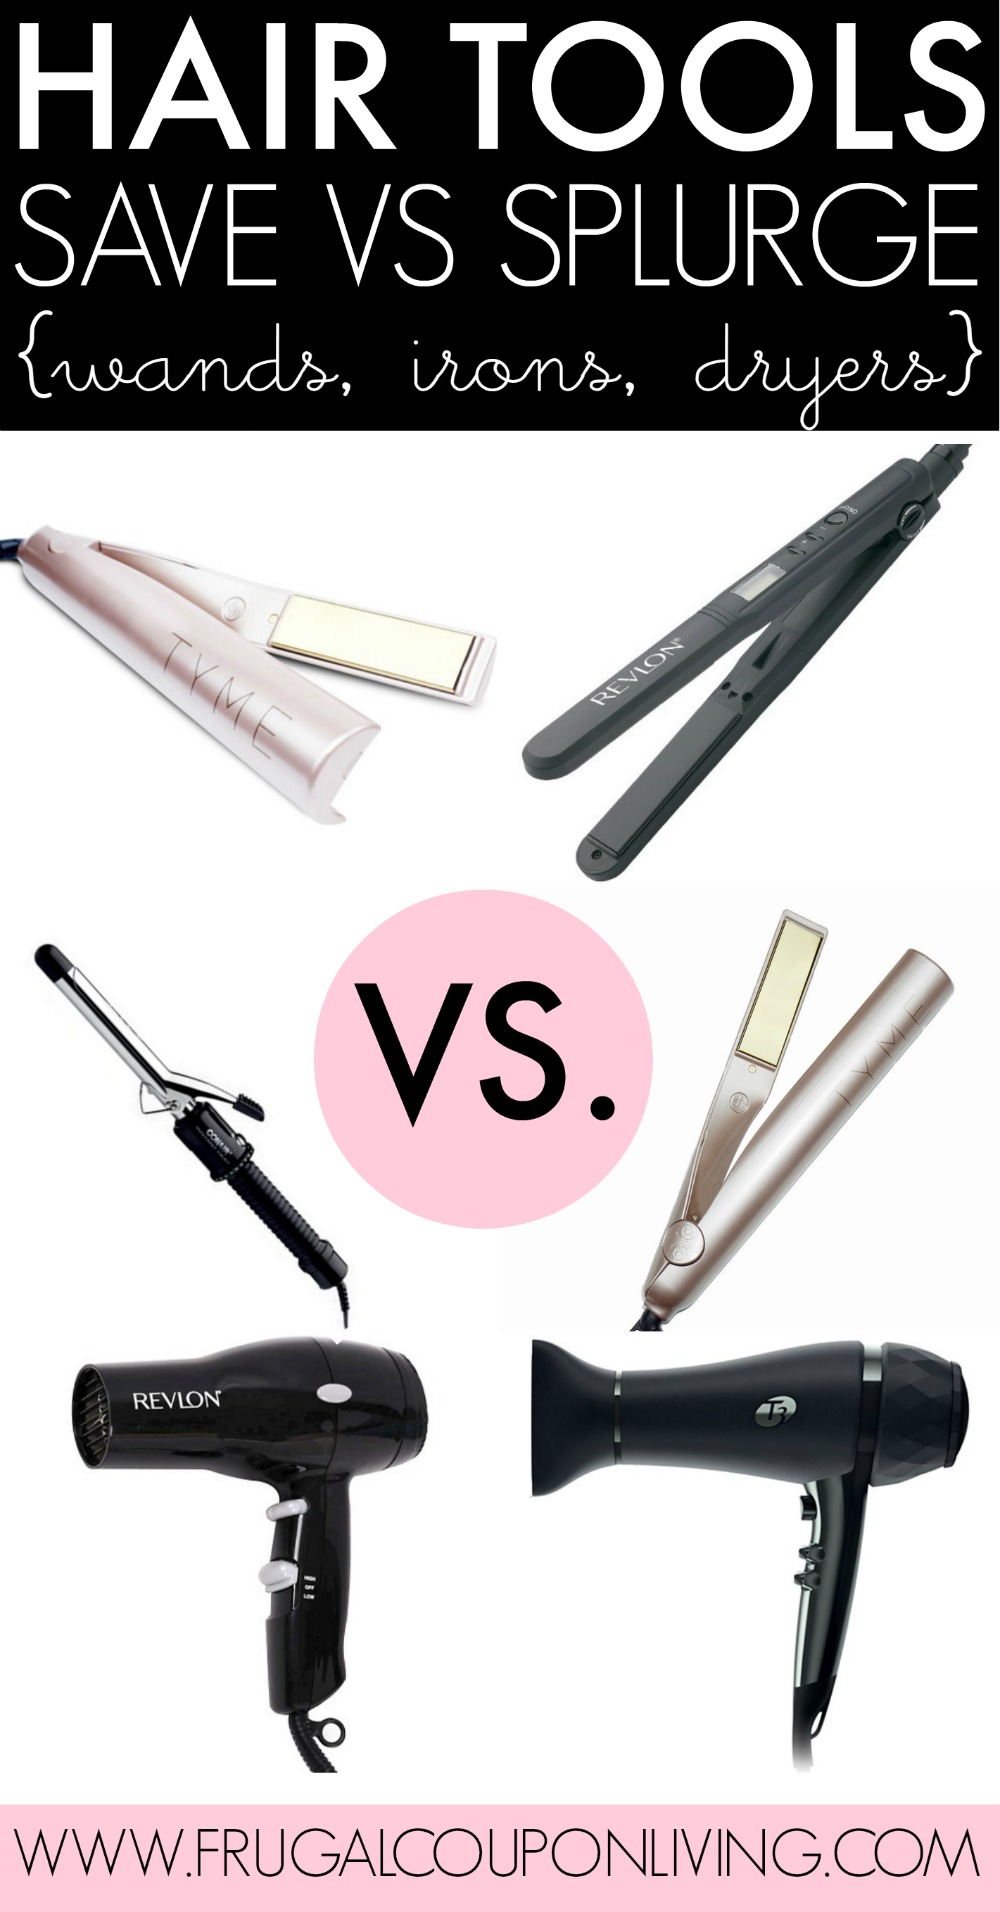 Hair-Tools-Collage-Save-vs-Splurge-frugal-coupon-living